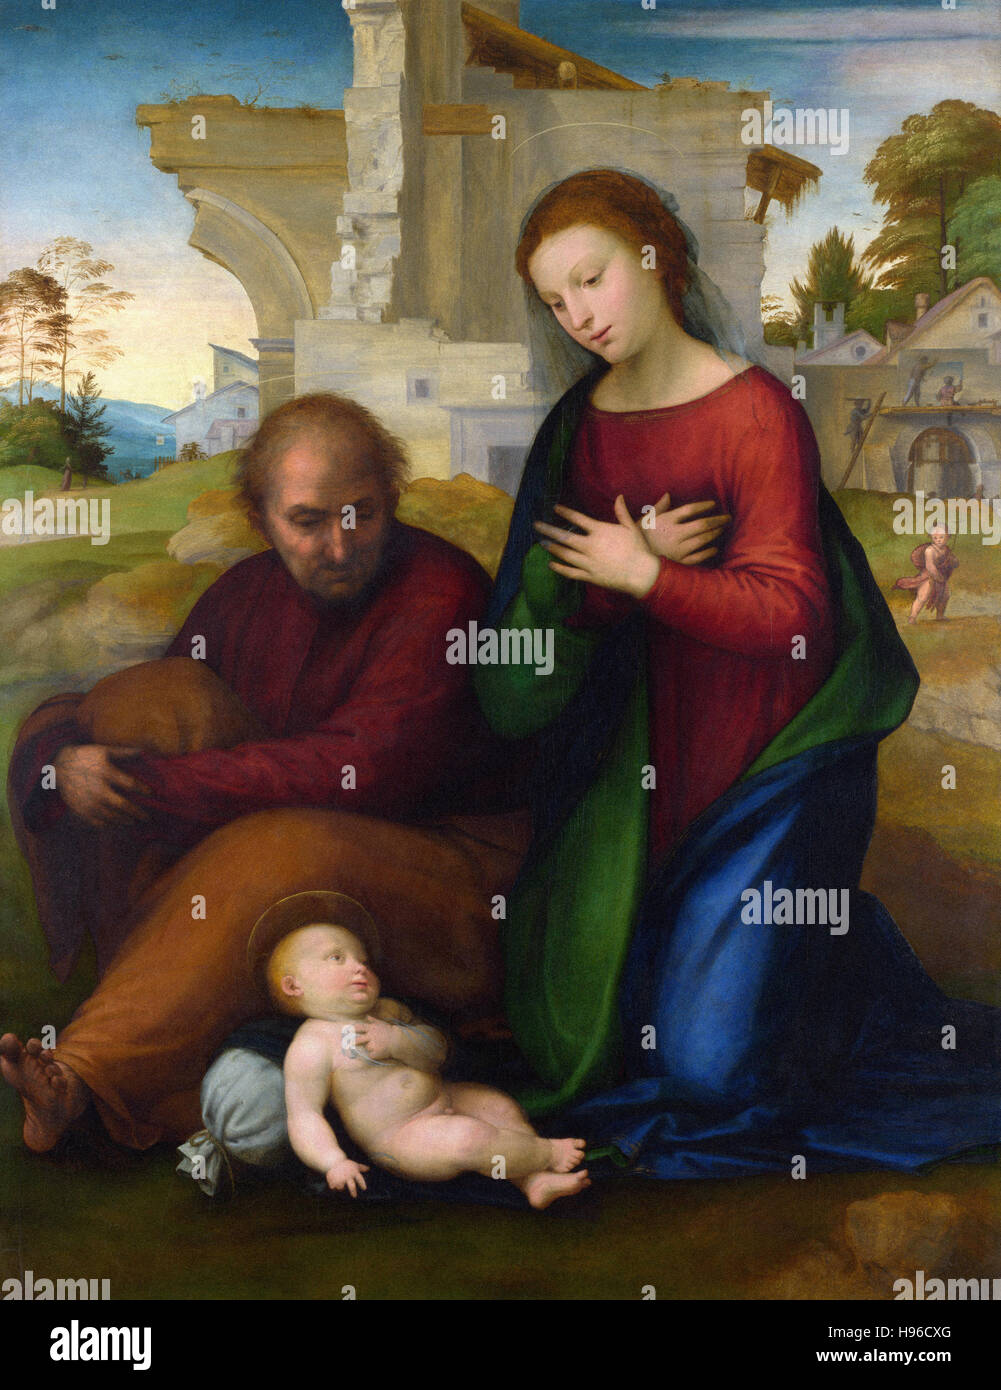 Fra Bartolommeo -   The Virgin adoring the Child with Saint Joseph  -  1511 - Stock Photo